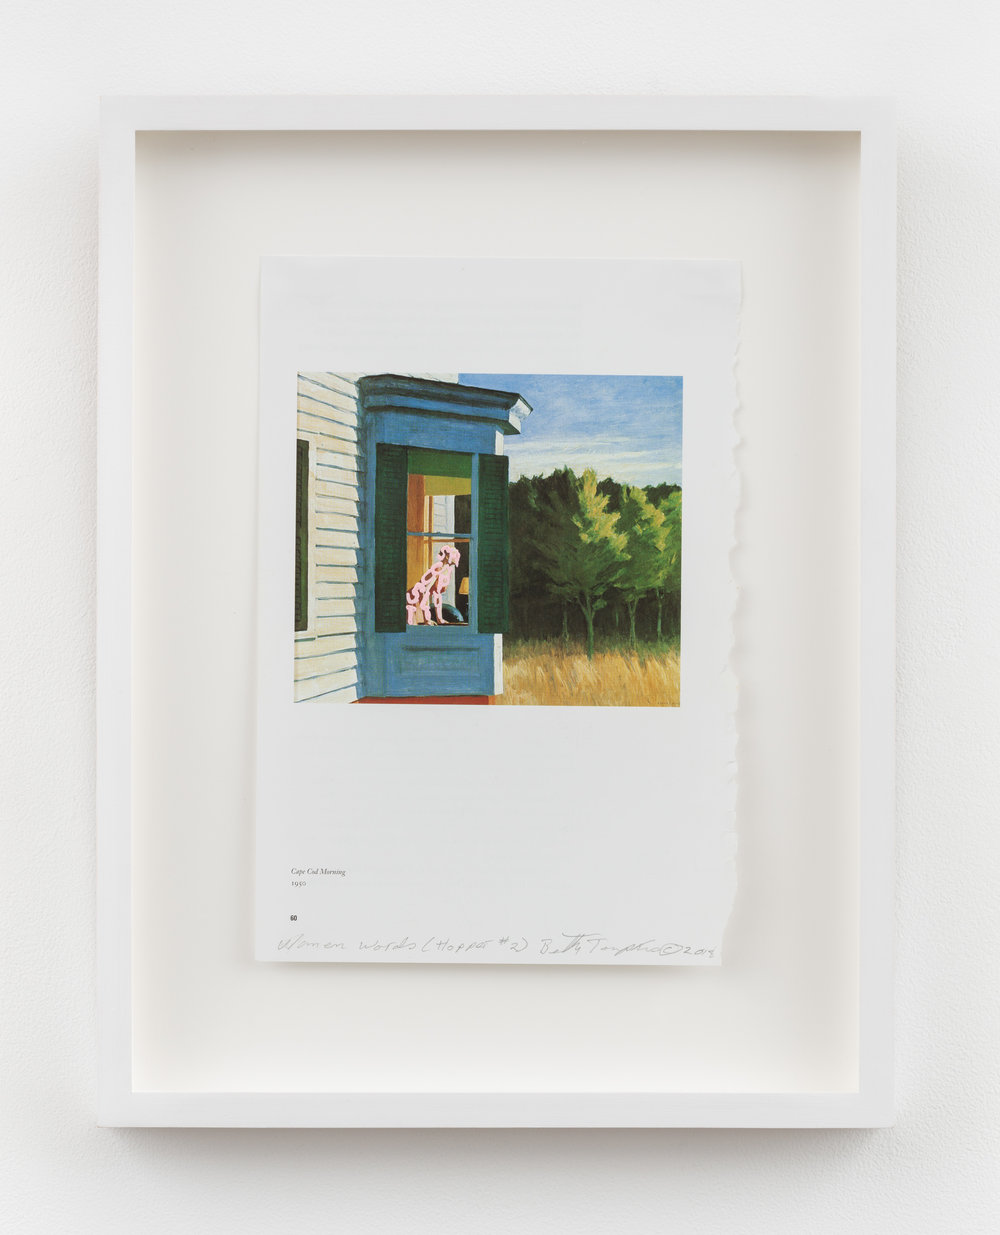 2018_Women Words (hopper #2)_10.4x7.2 inches.jpg